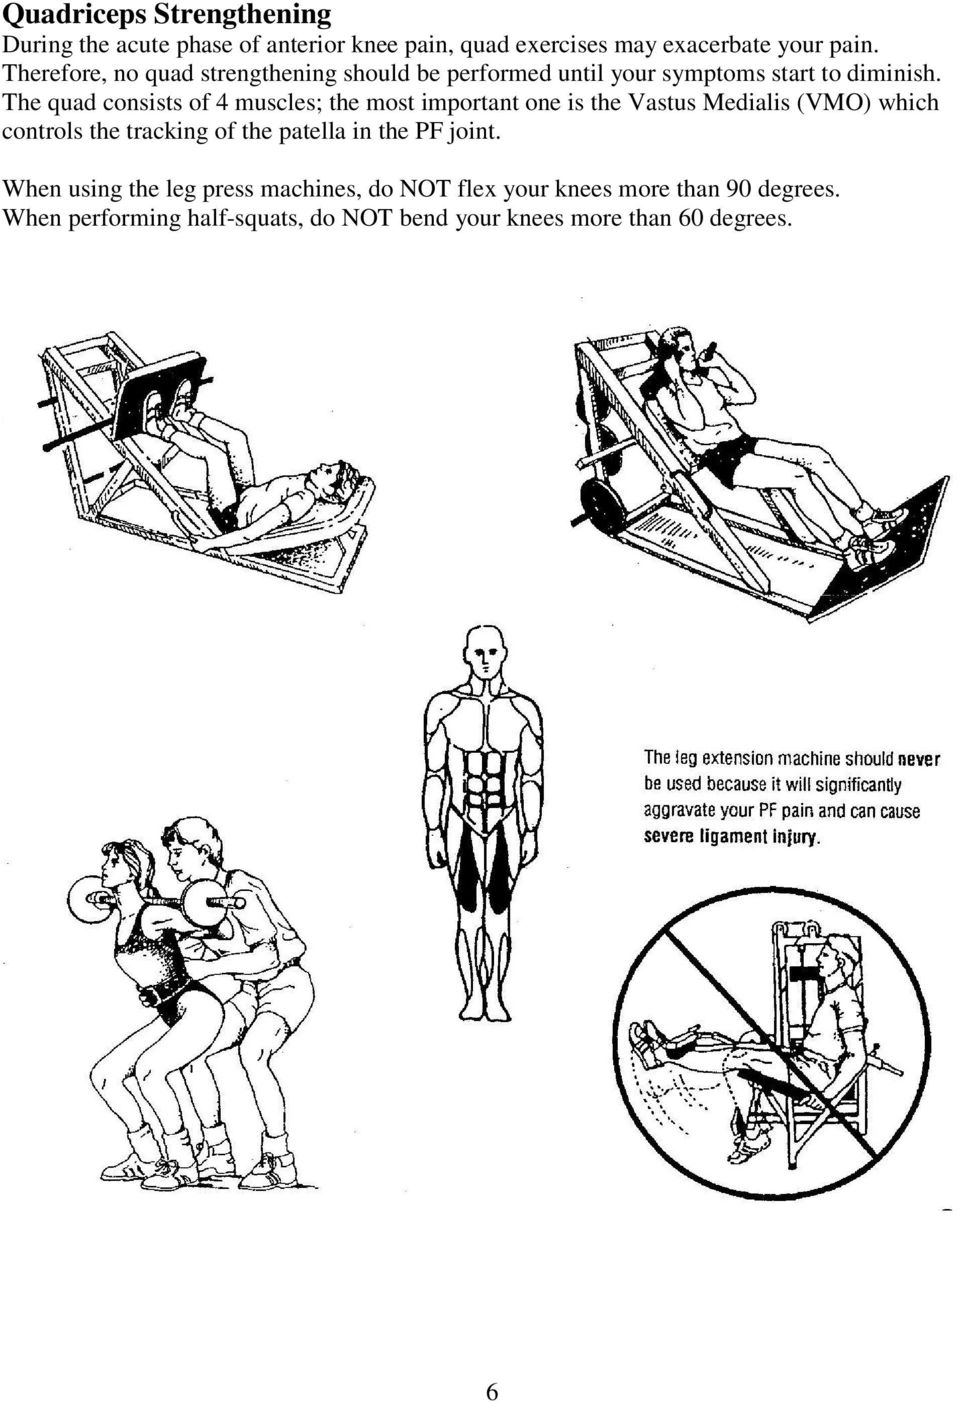 The quad consists of 4 muscles; the most important one is the Vastus Medialis (VMO) which controls the tracking of the